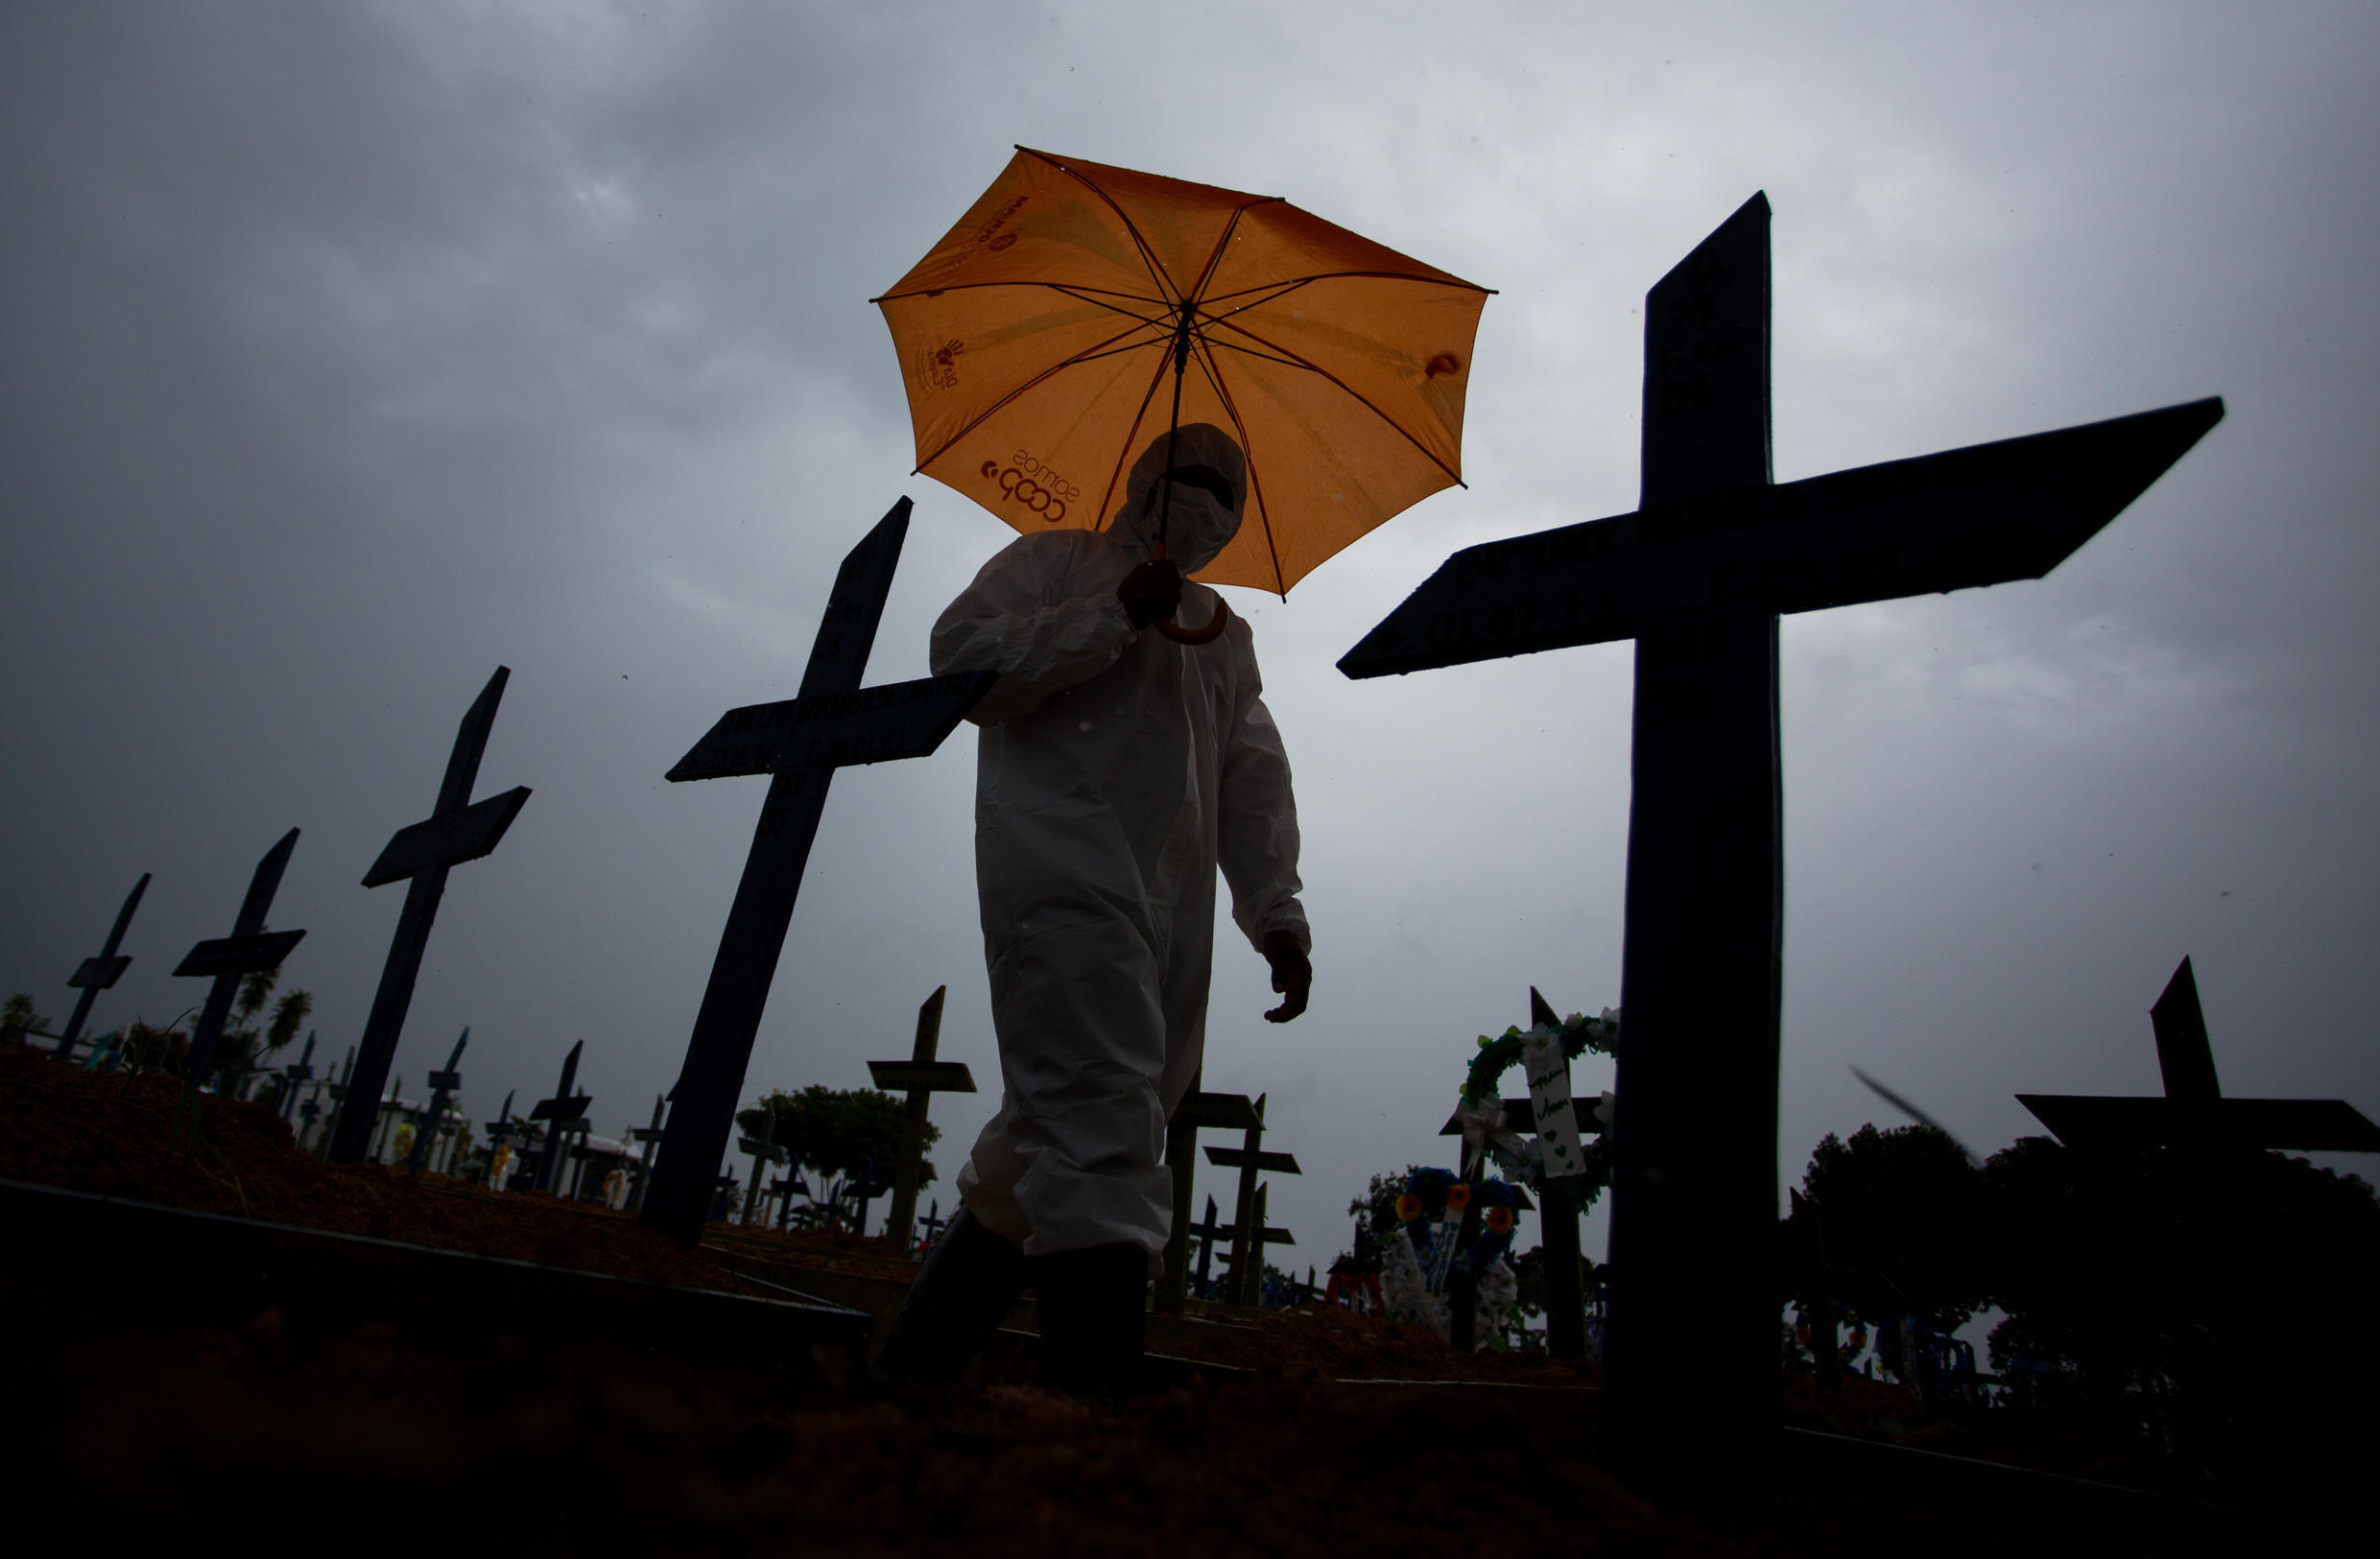 Image d'archive RFI : A workers wearing a protective suit and carrying an umbrella walks past the graves of COVID-19 victims in Manaus, Brazil